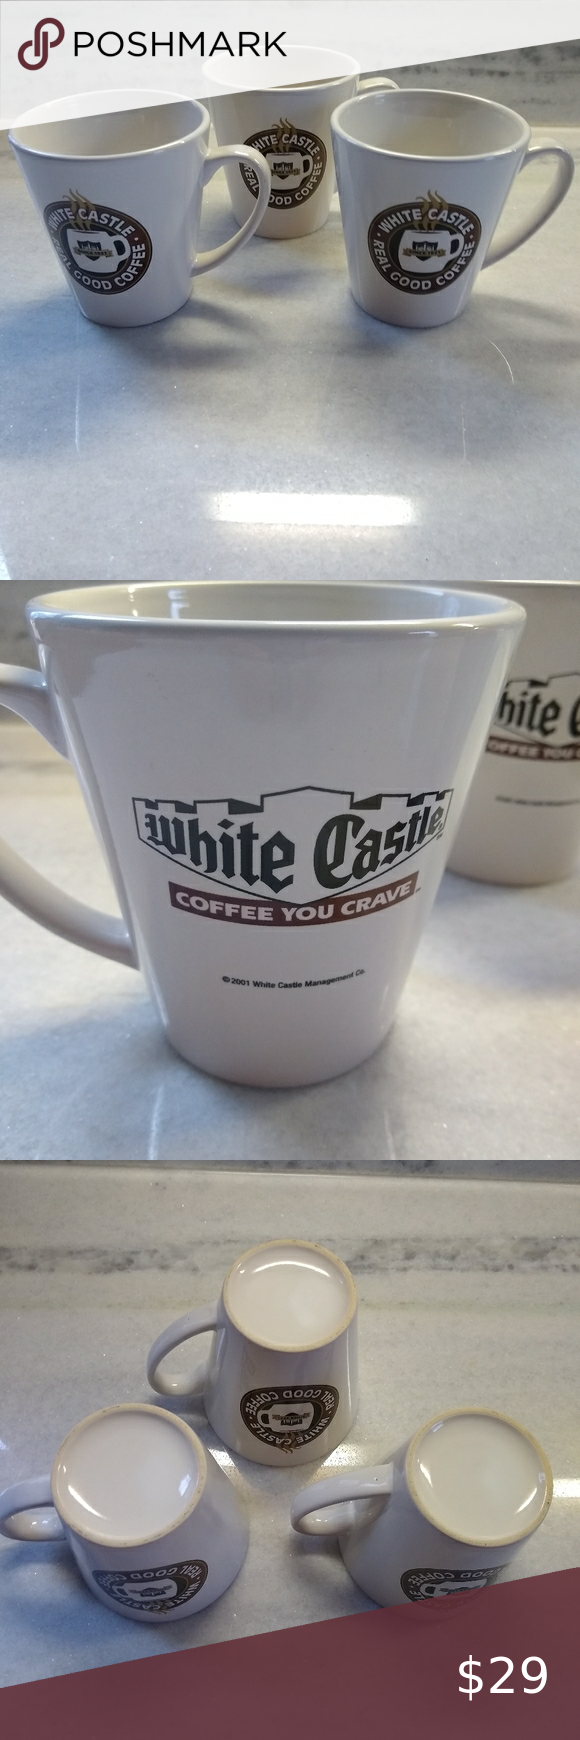 """Vintage White Castle /""""Real Good Coffee/"""" /""""Coffee You Crave/"""" Coffee Mug cup"""